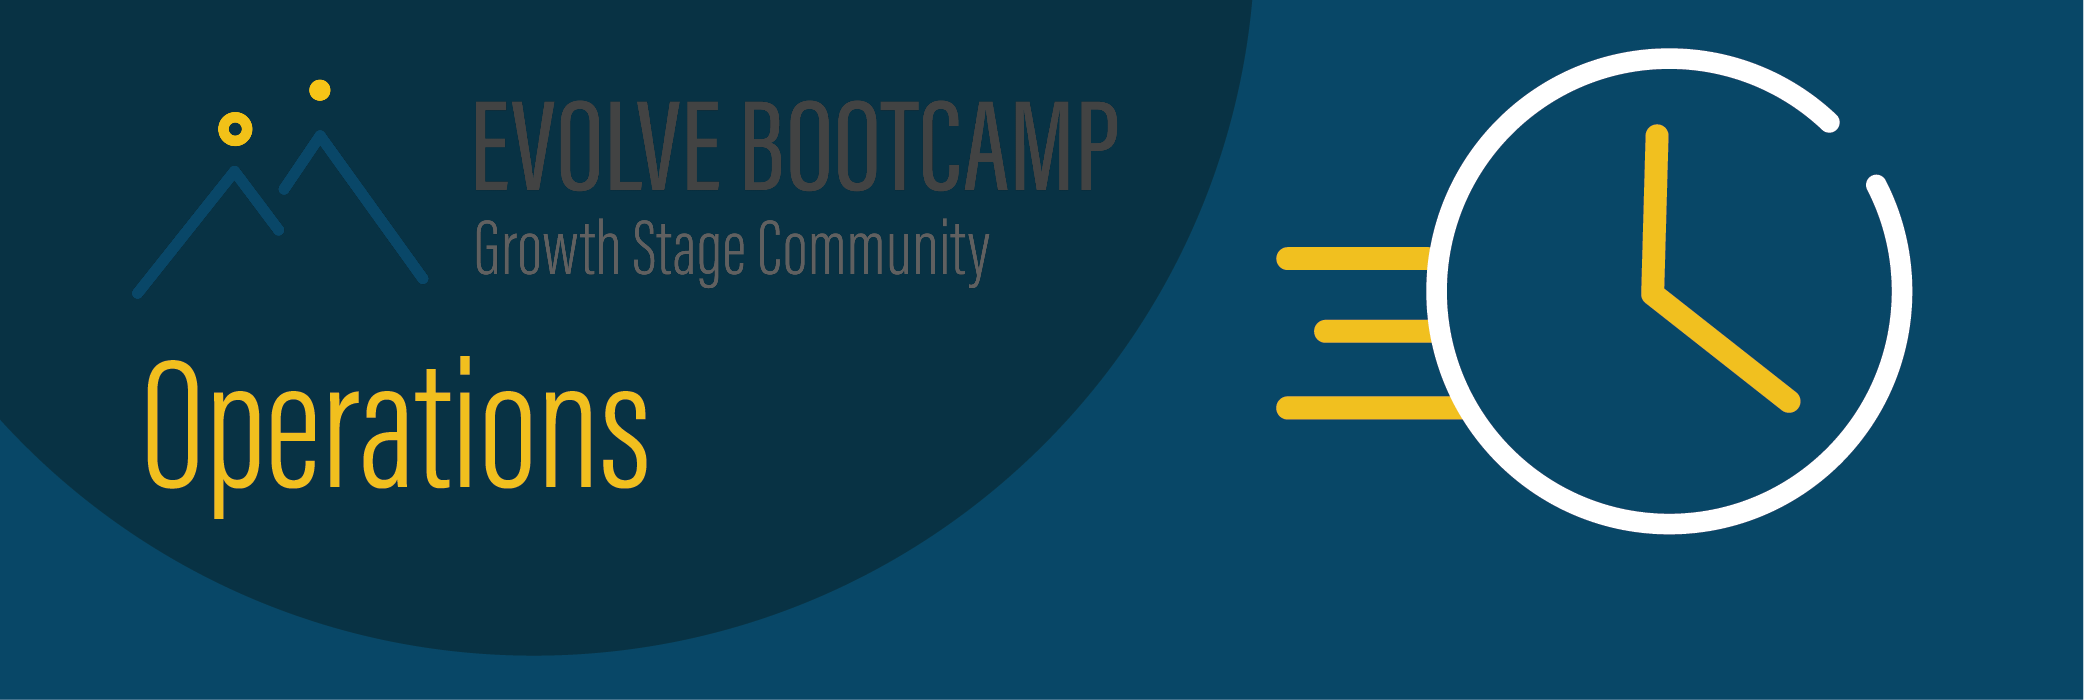 Evolve Bootcamp Operations